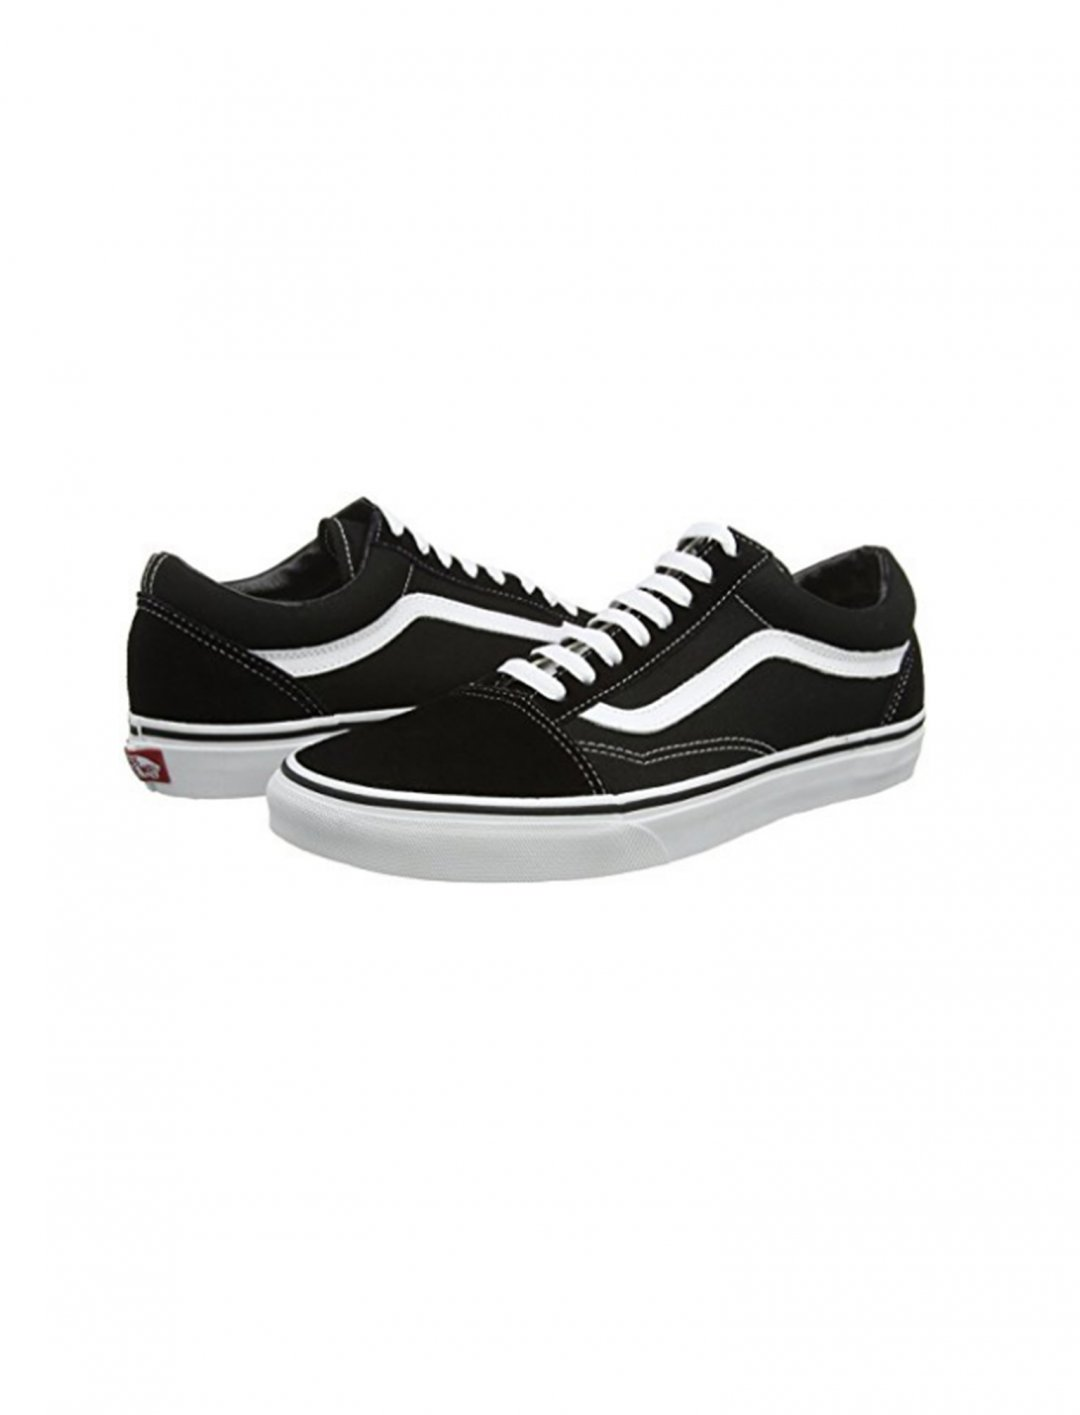 "Unisex Old Skool Sneakers {""id"":12,""product_section_id"":1,""name"":""Shoes"",""order"":12} Vans"